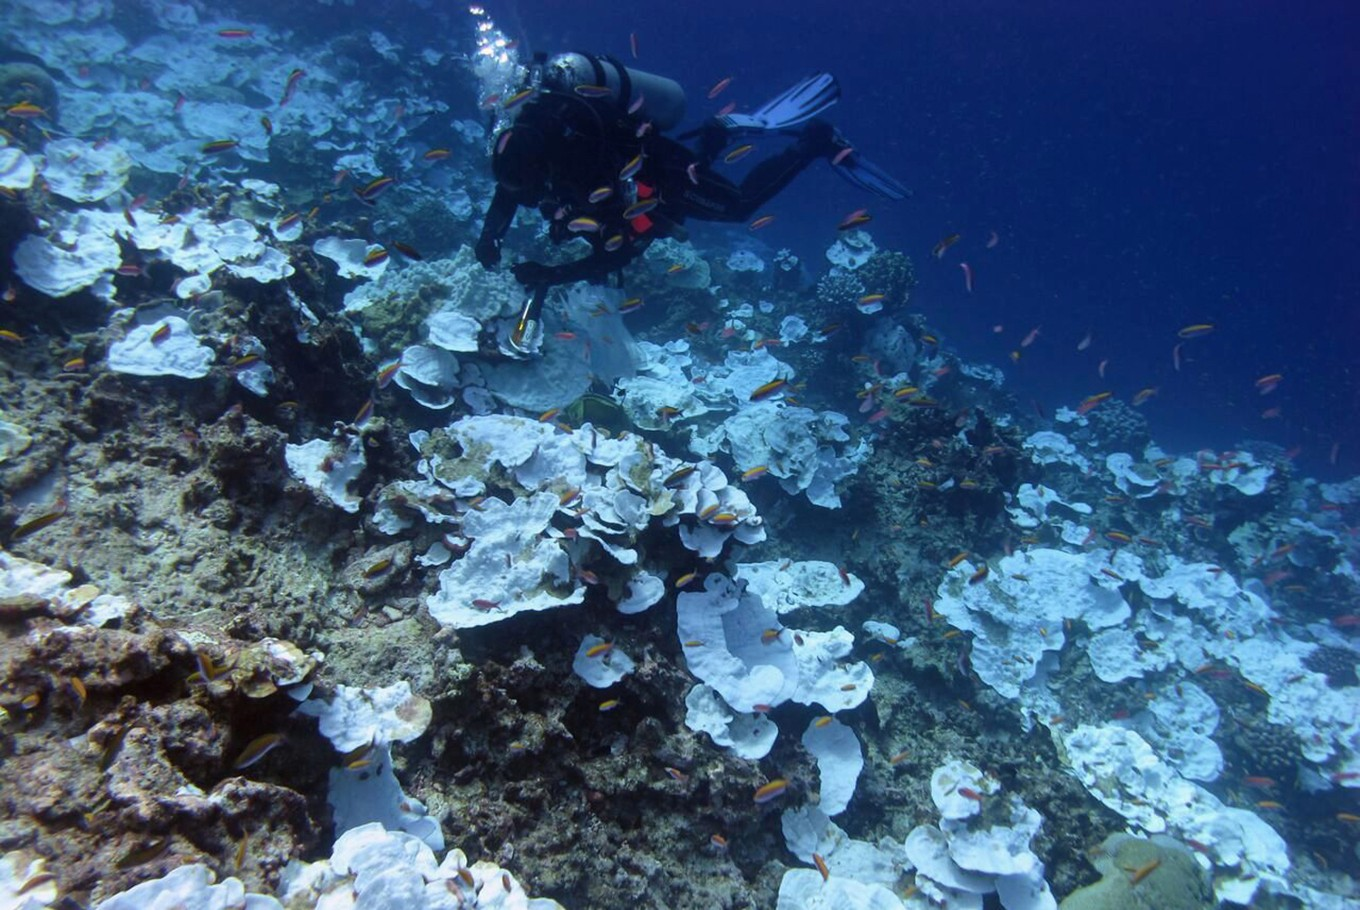 Things to know about coral reefs and their importance